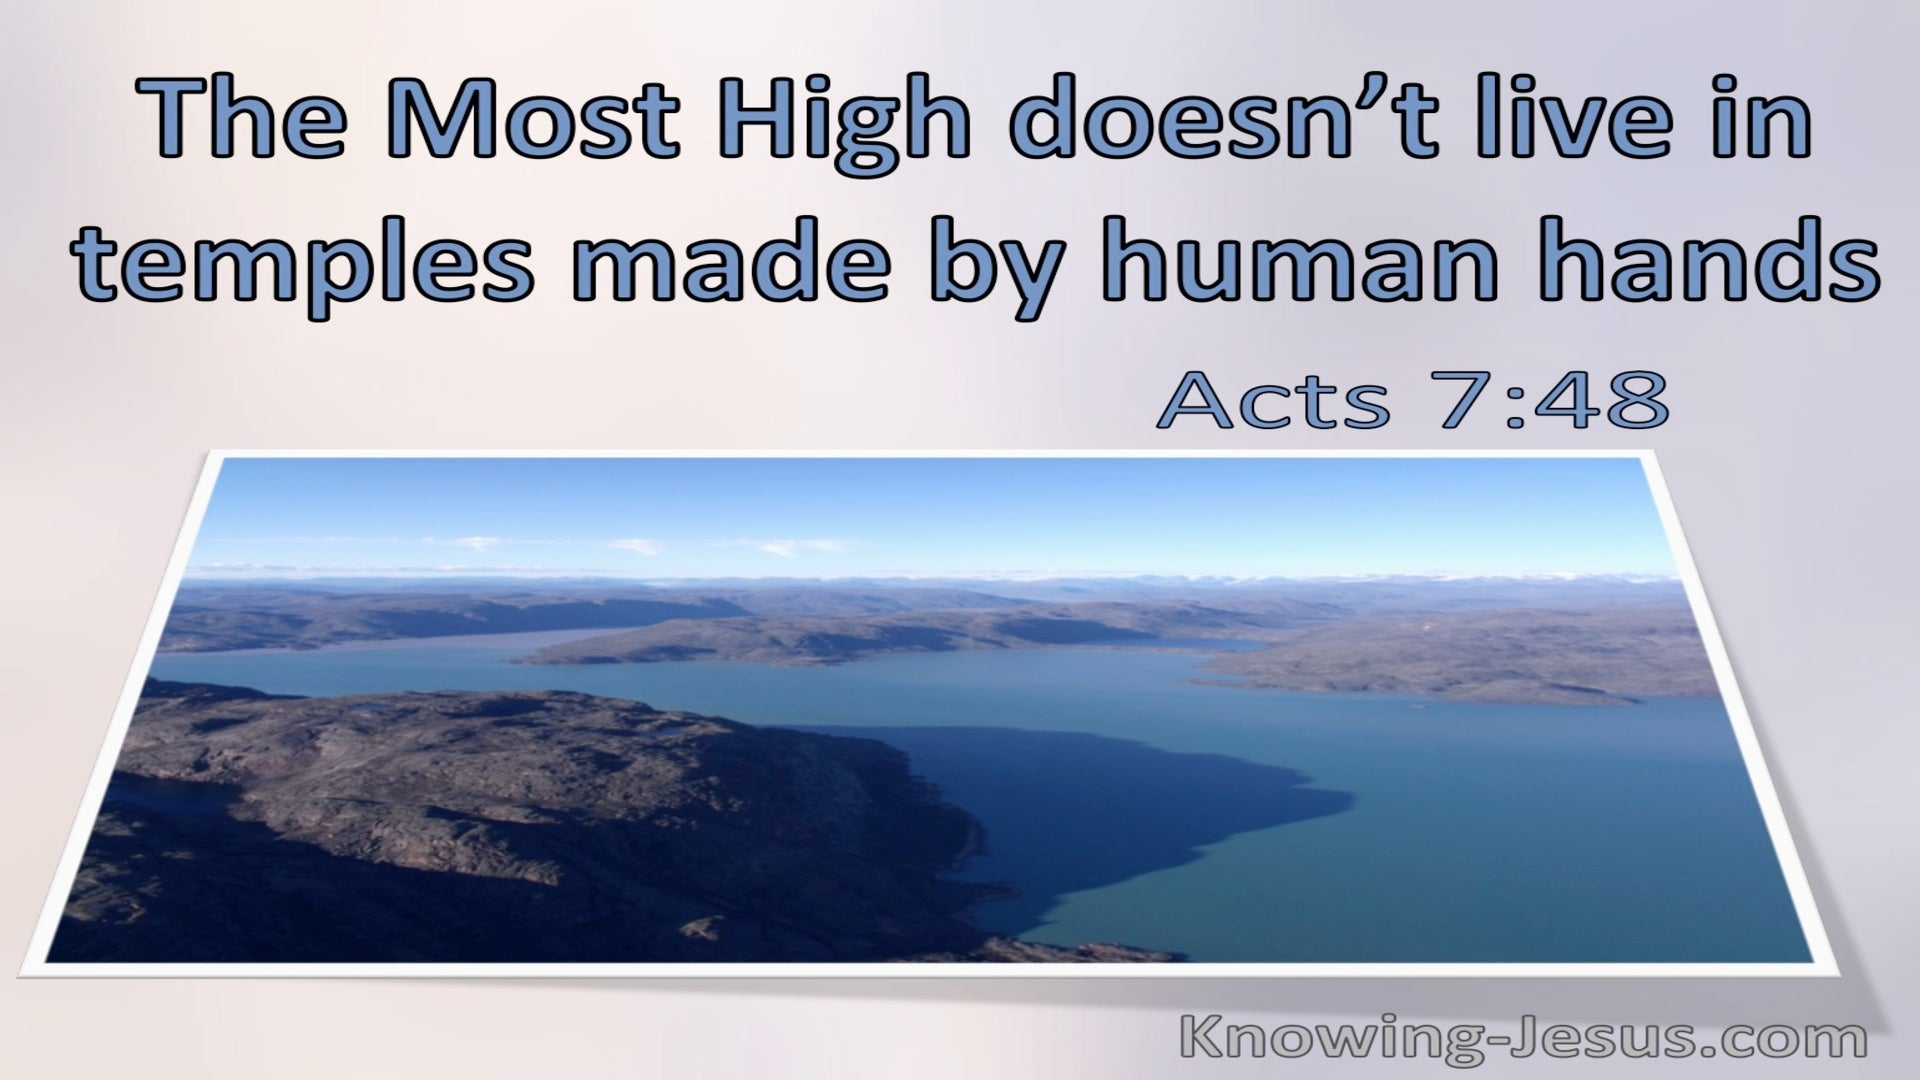 Acts 7:48 The Most High Does Not Live In Temples Made By Human Hands (windows)10:21